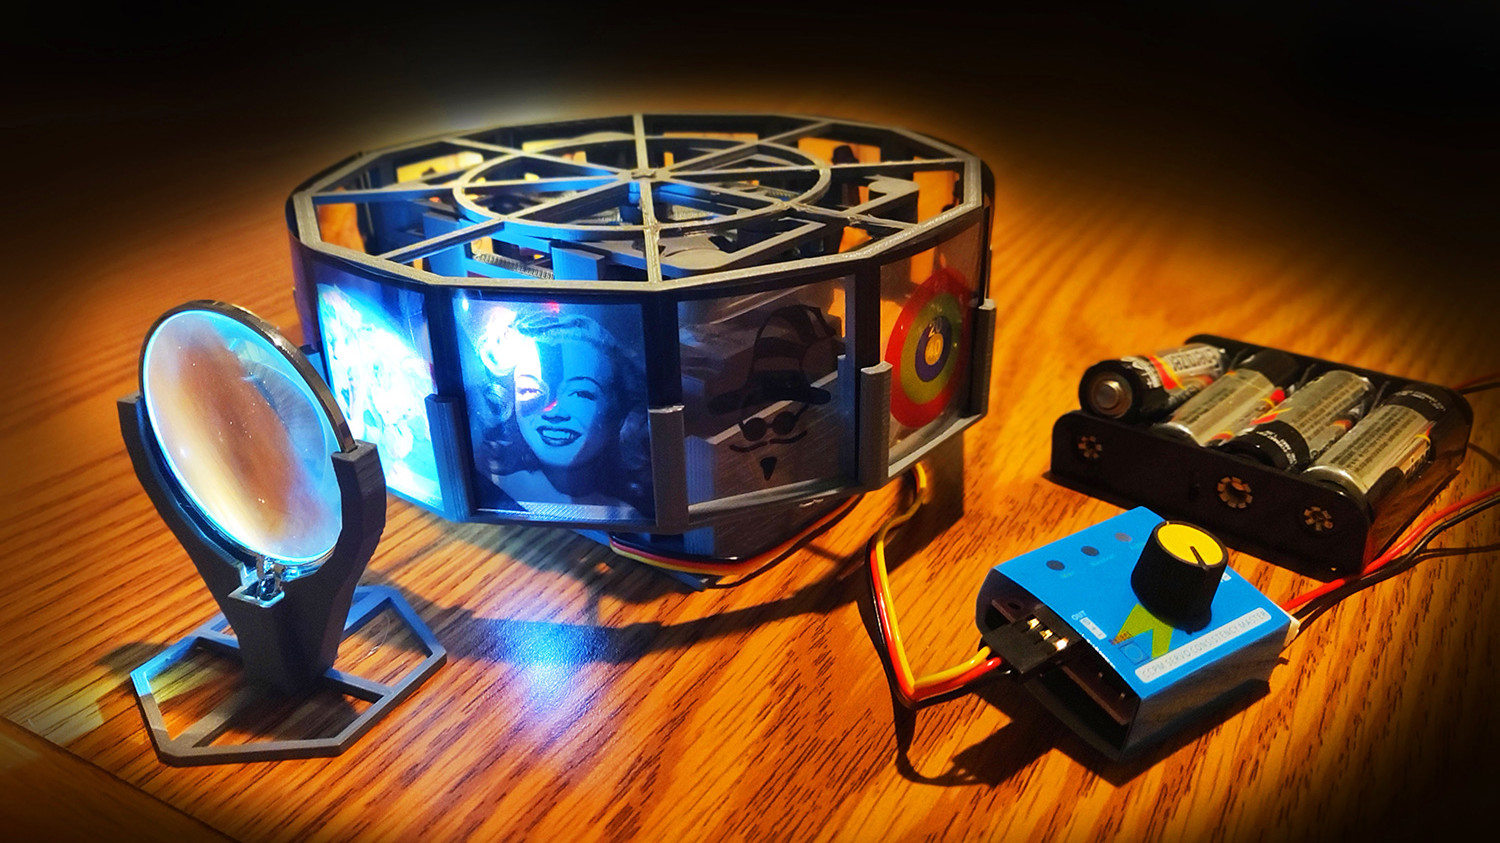 [Project] Hit the Big Screen with a 3D Printed Projector | All3DP